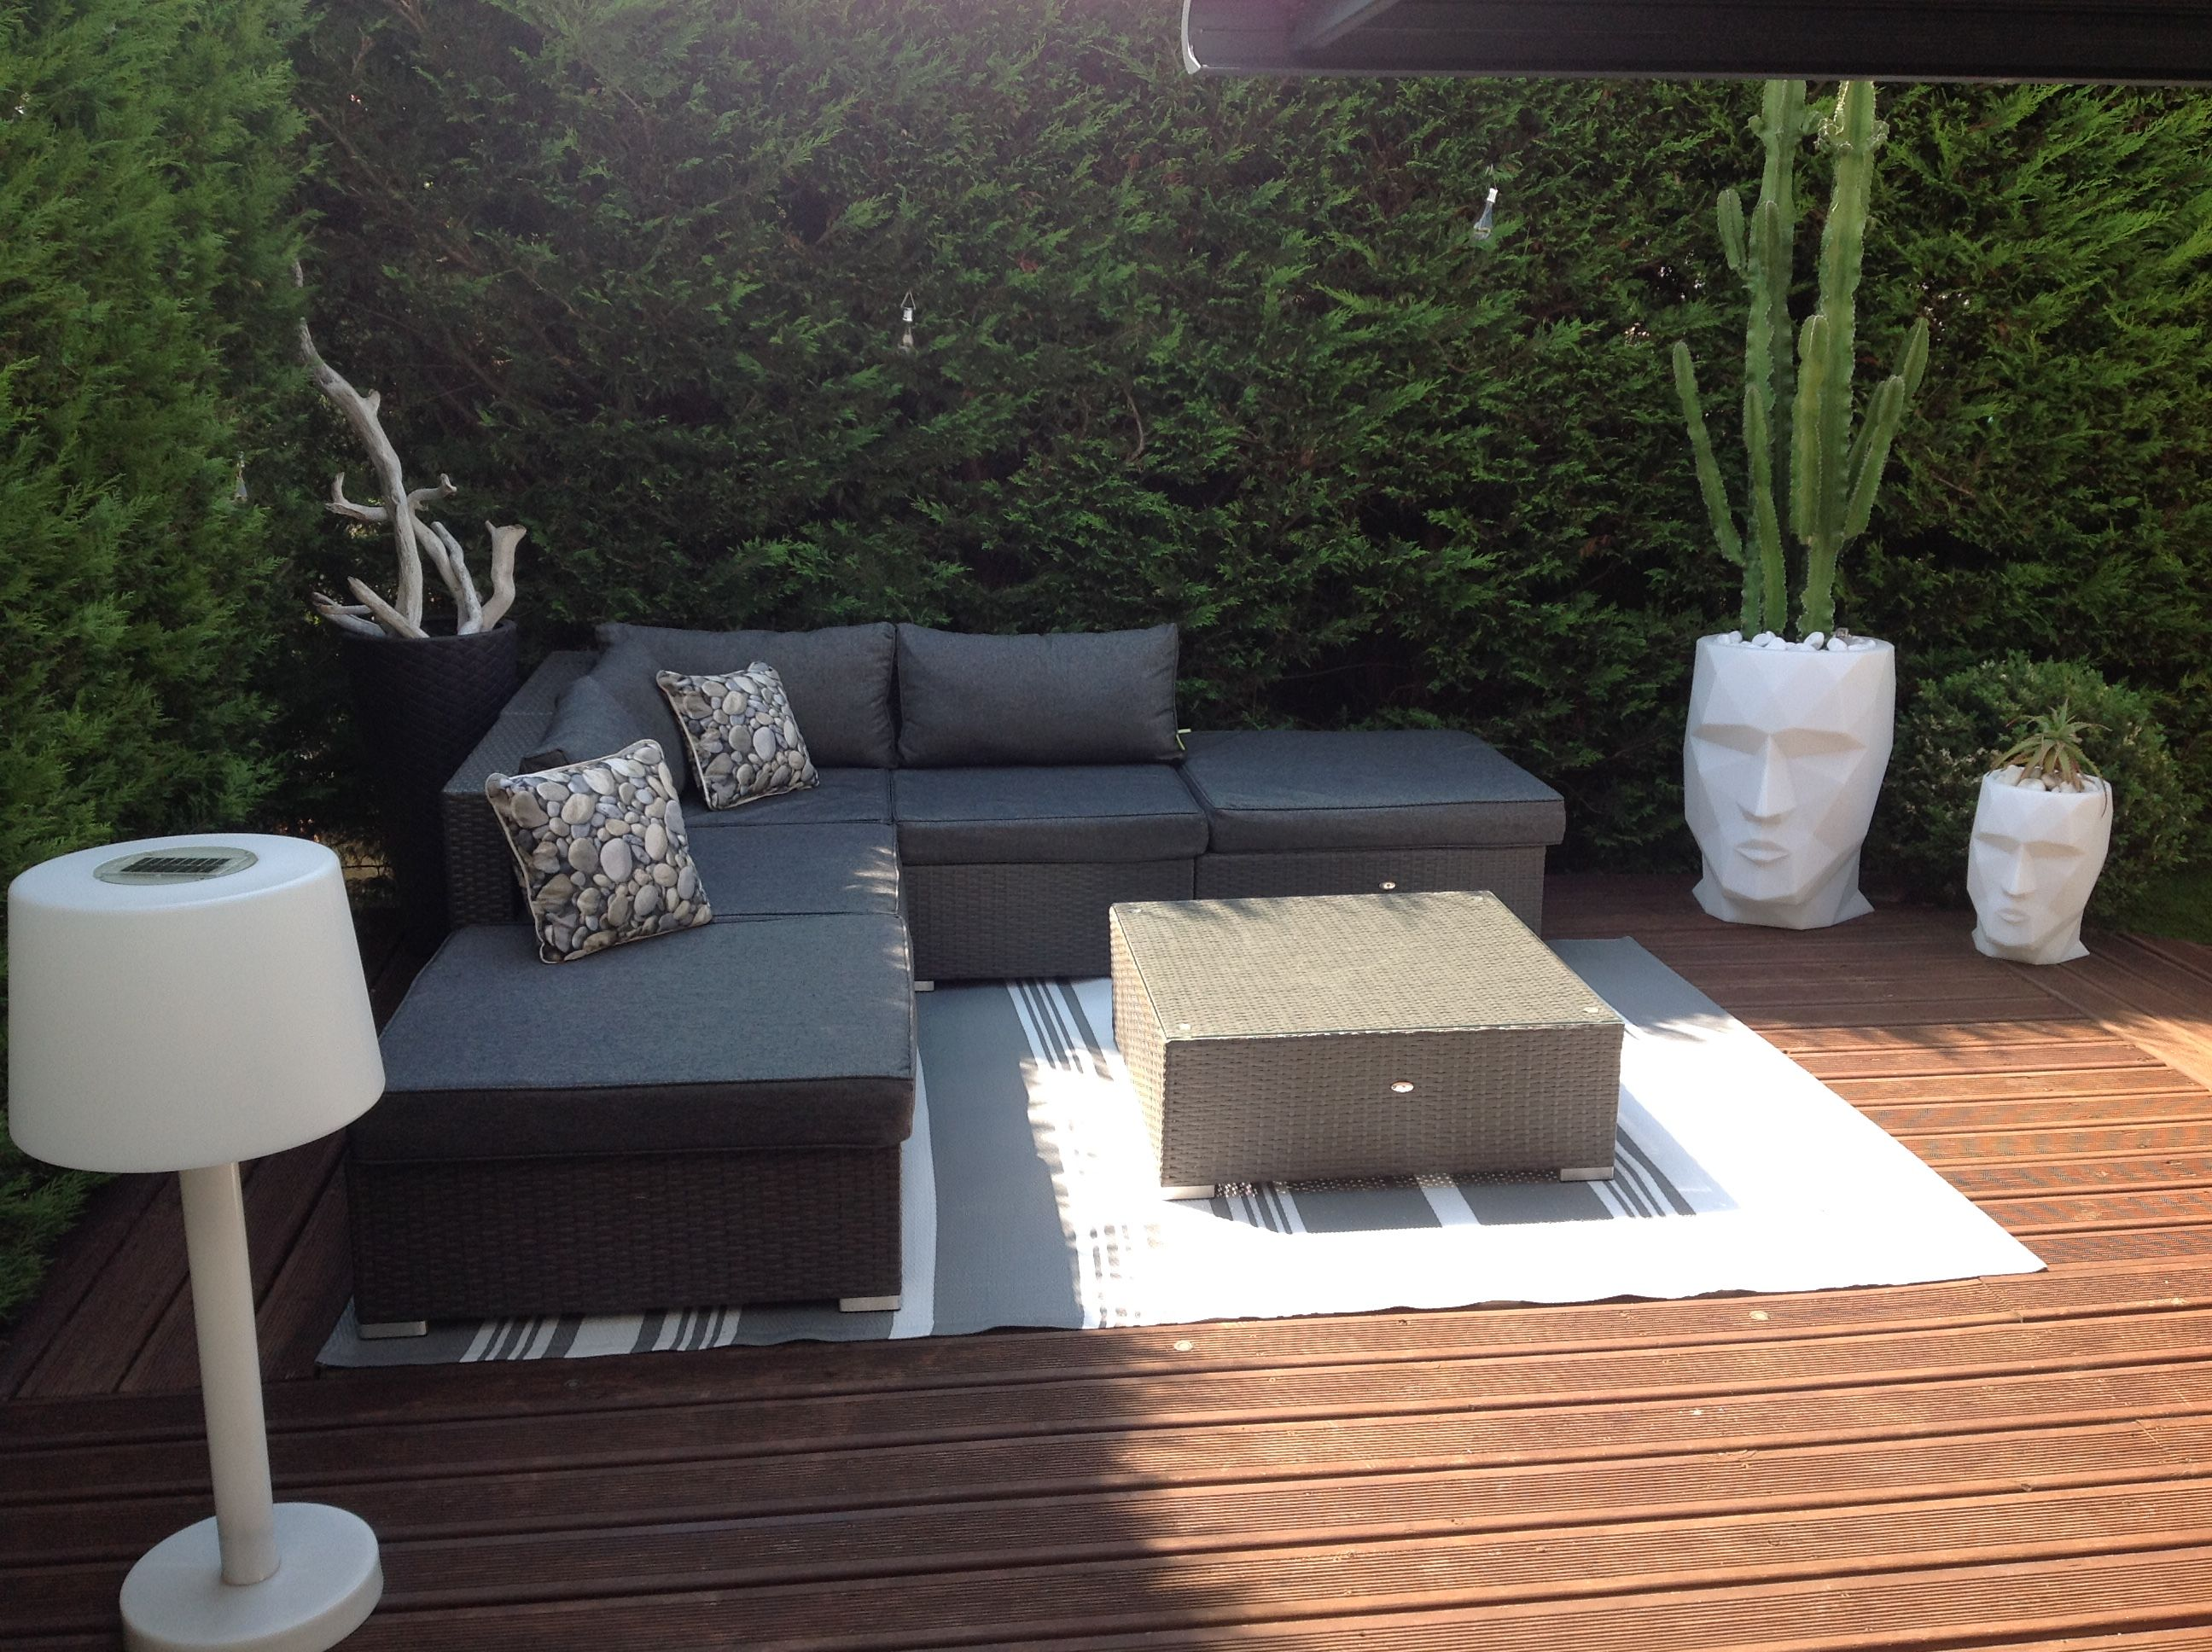 Milano salon de jardin 7 places en r sine tress e for Decoration jardin terrasse